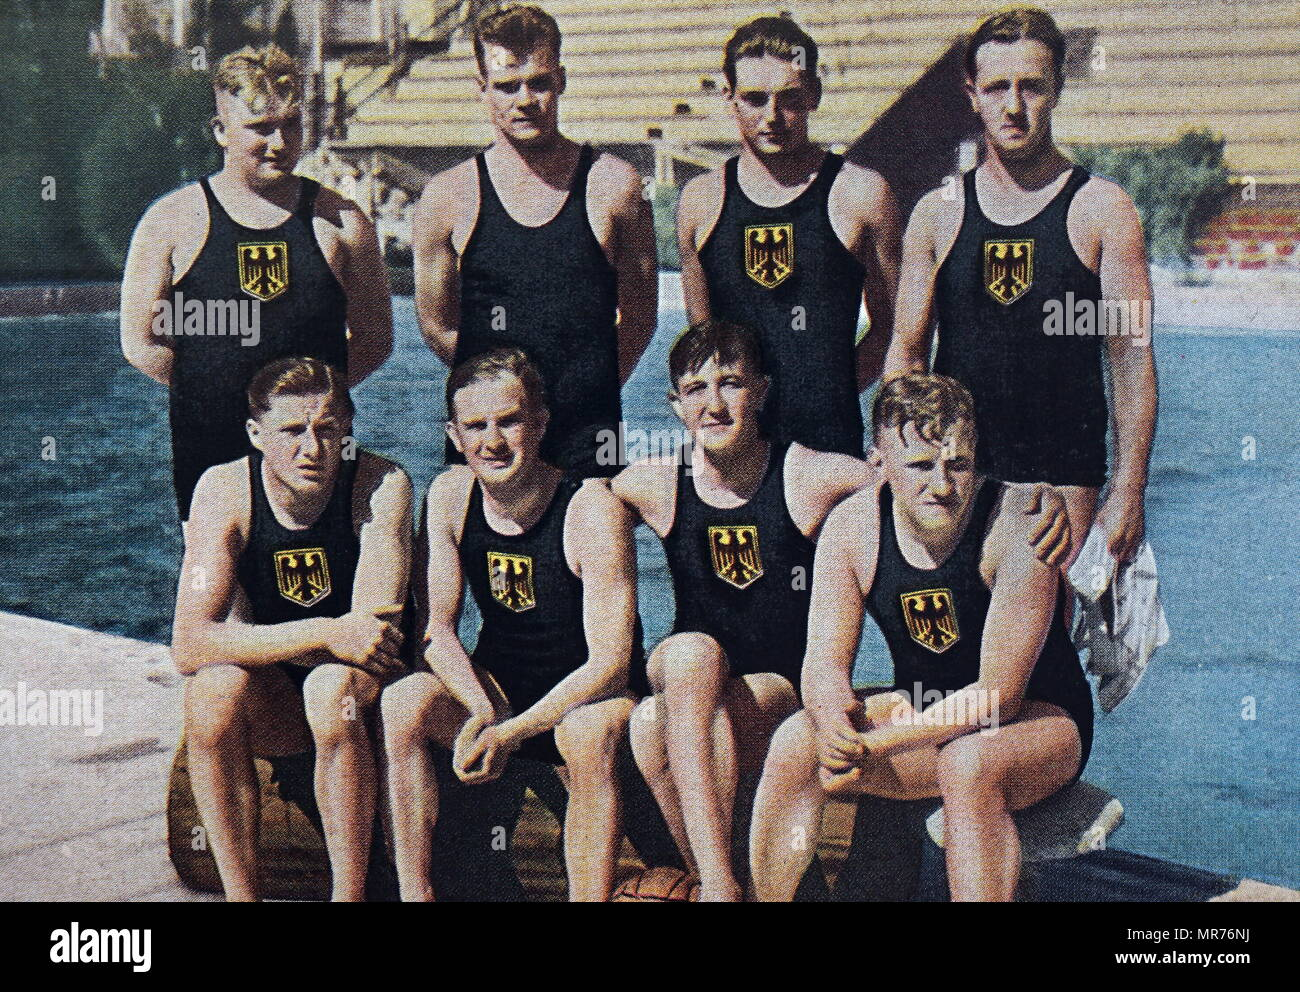 Photograph of the German water polo team at the 1932 Olympic games. - Stock Image